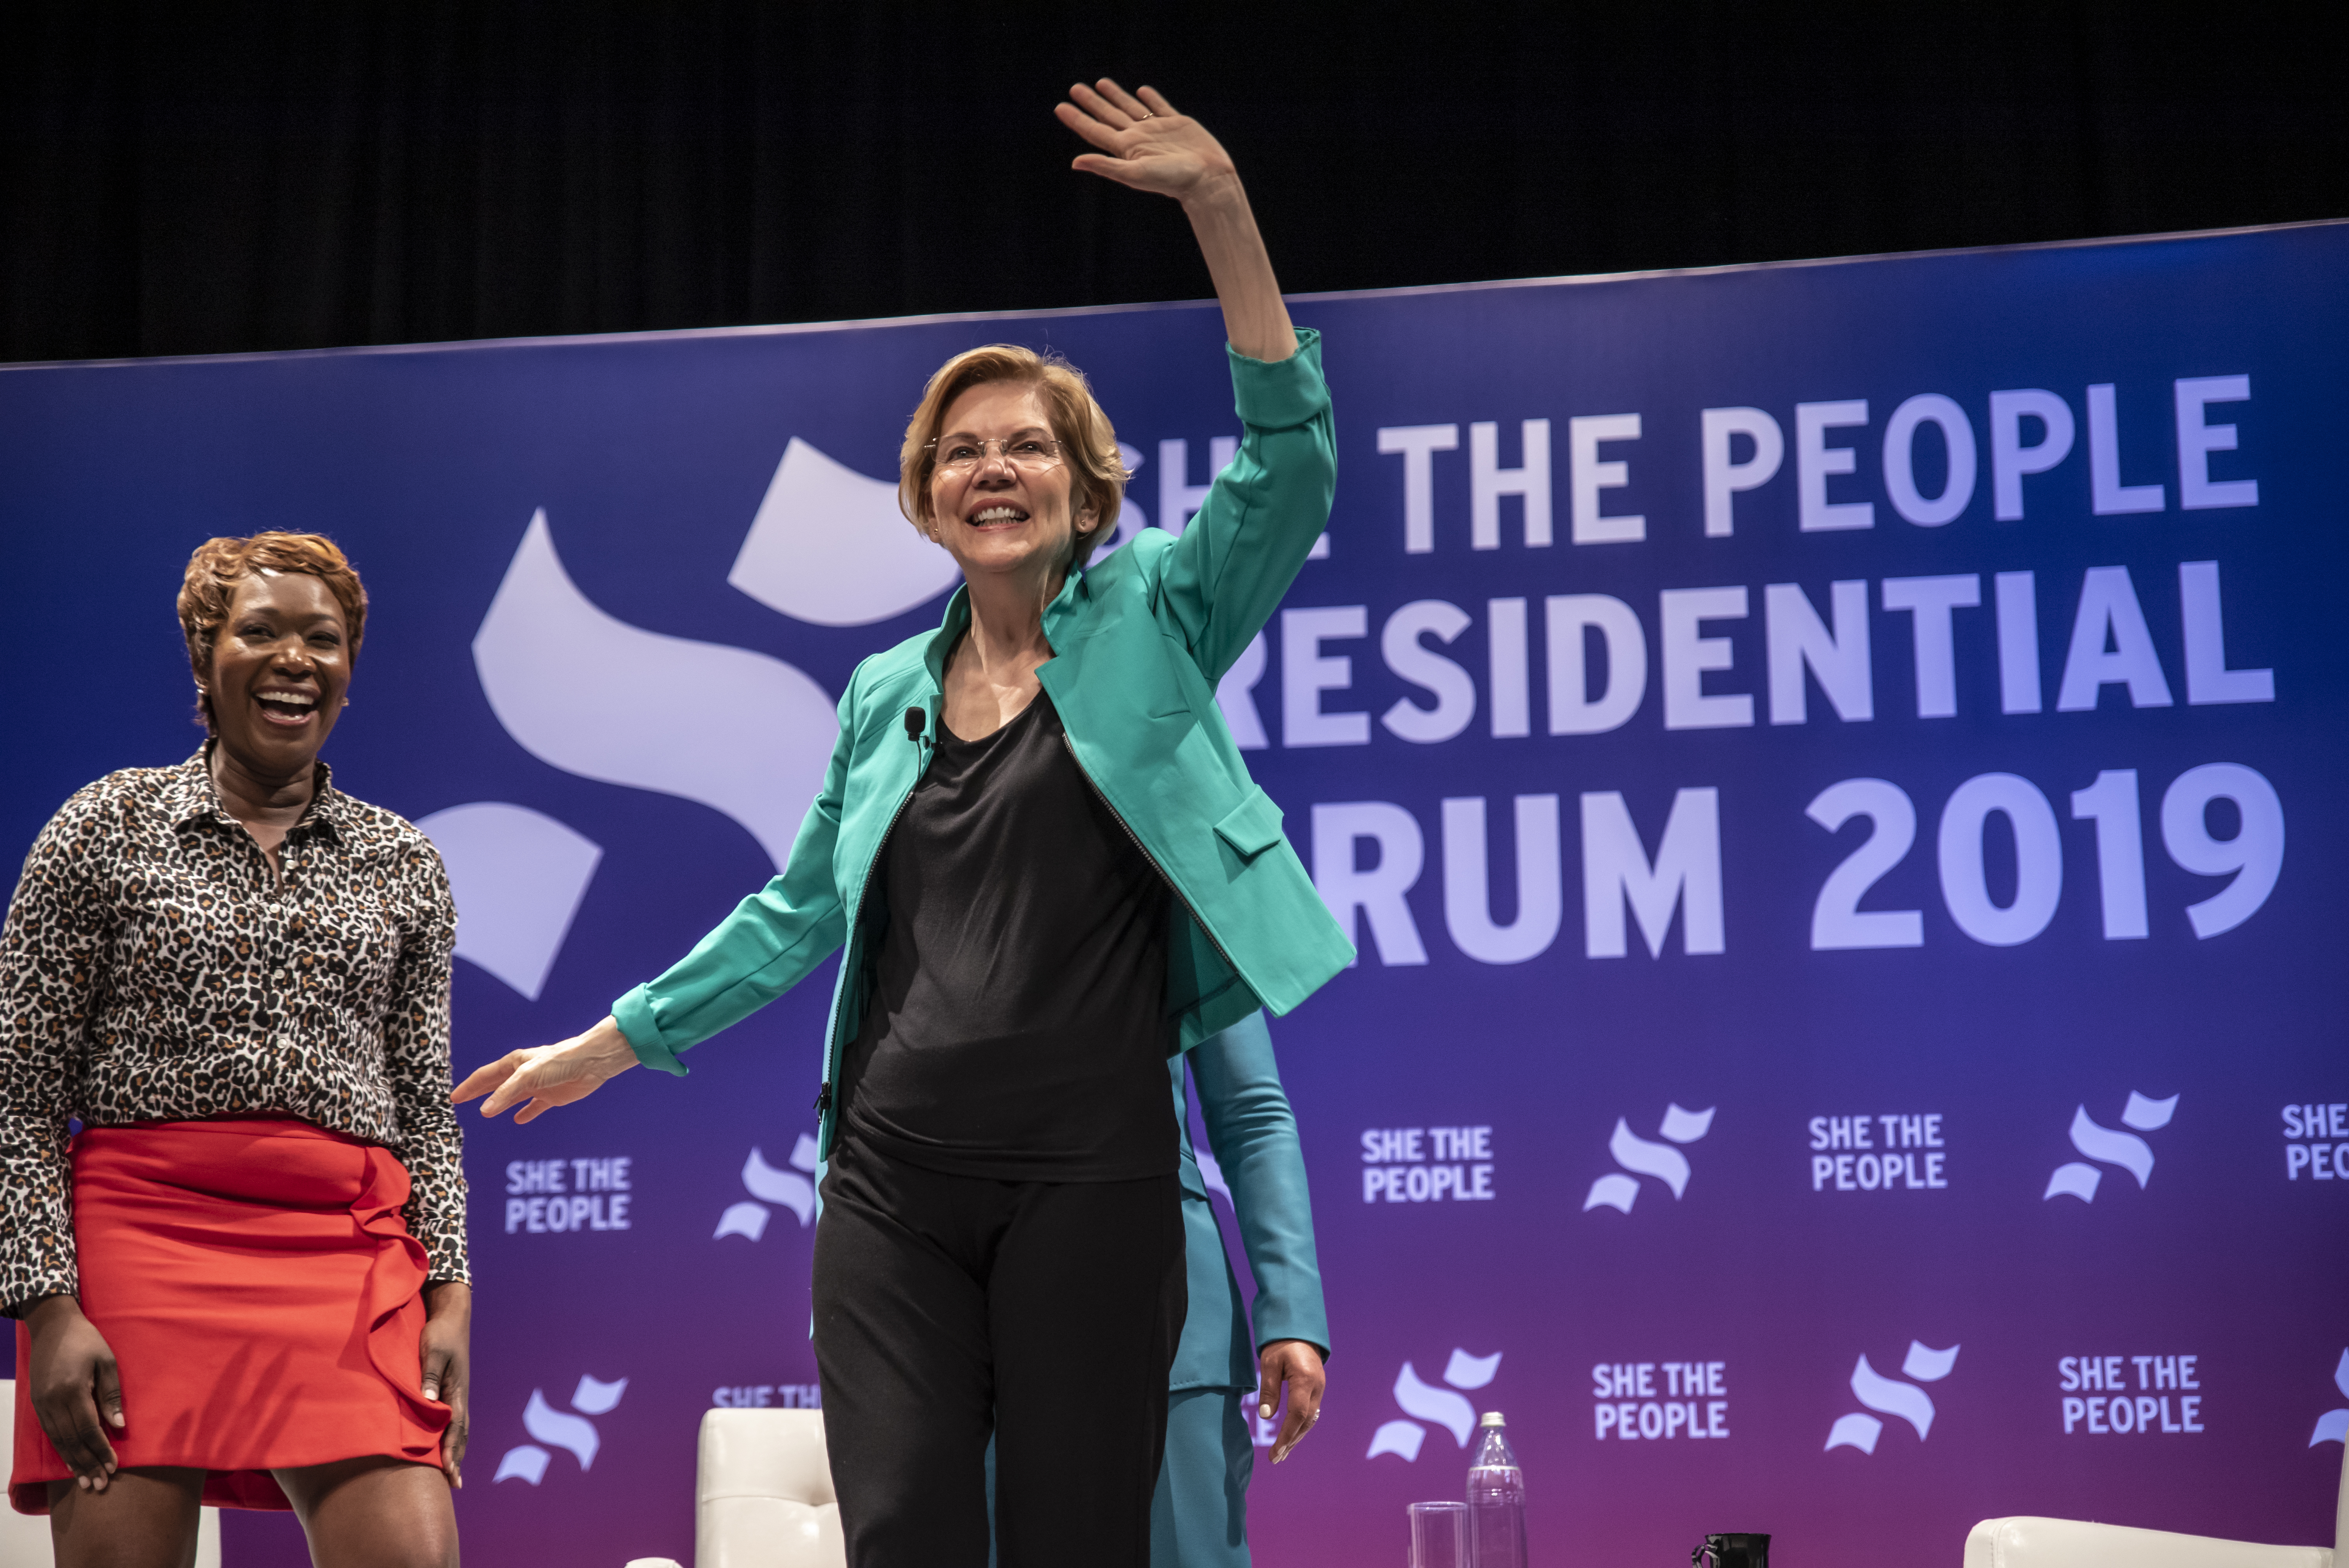 HOUSTON, TX - APRIL 24: Democratic presidential candidate Sen. Elizabeth Warren (D-MA) waves to a crowd at the She The People Presidential Forum at Texas Southern University (Photo by Sergio Flores/Getty Images)